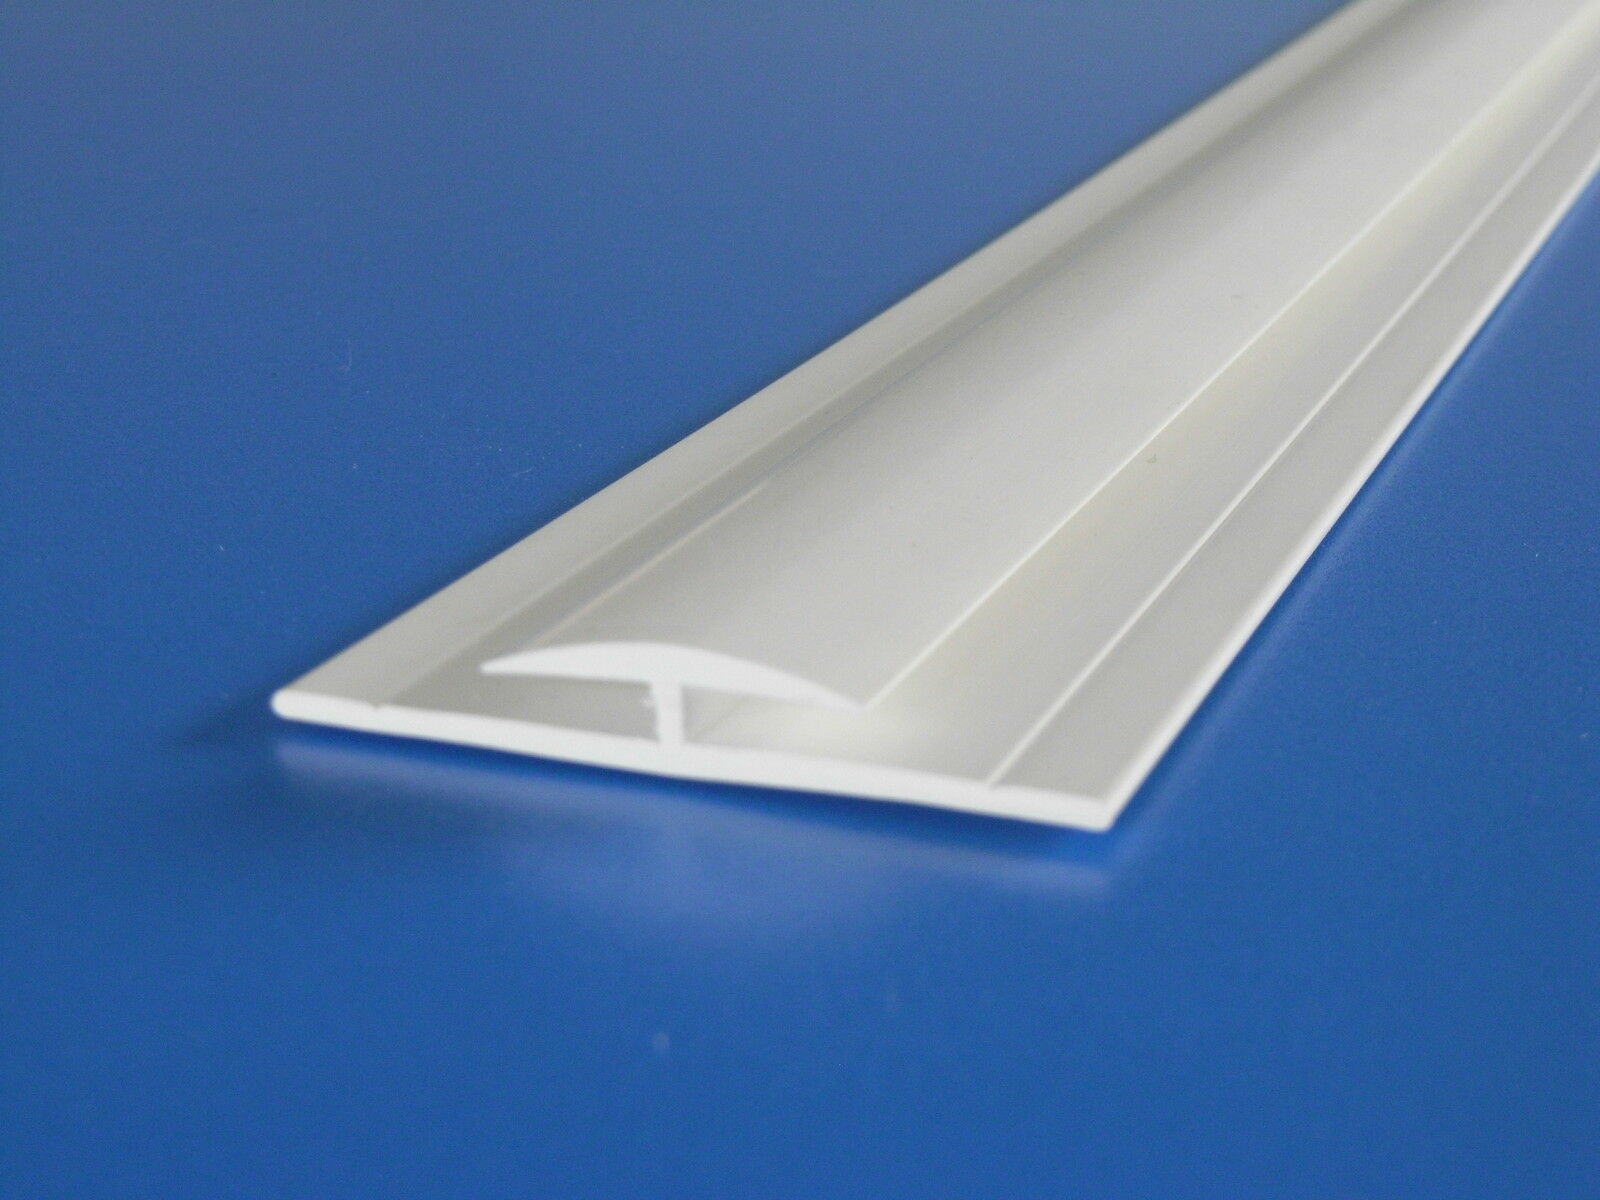 Joining Strip For White Pvc Hygienic Wall Cladding 2440mm